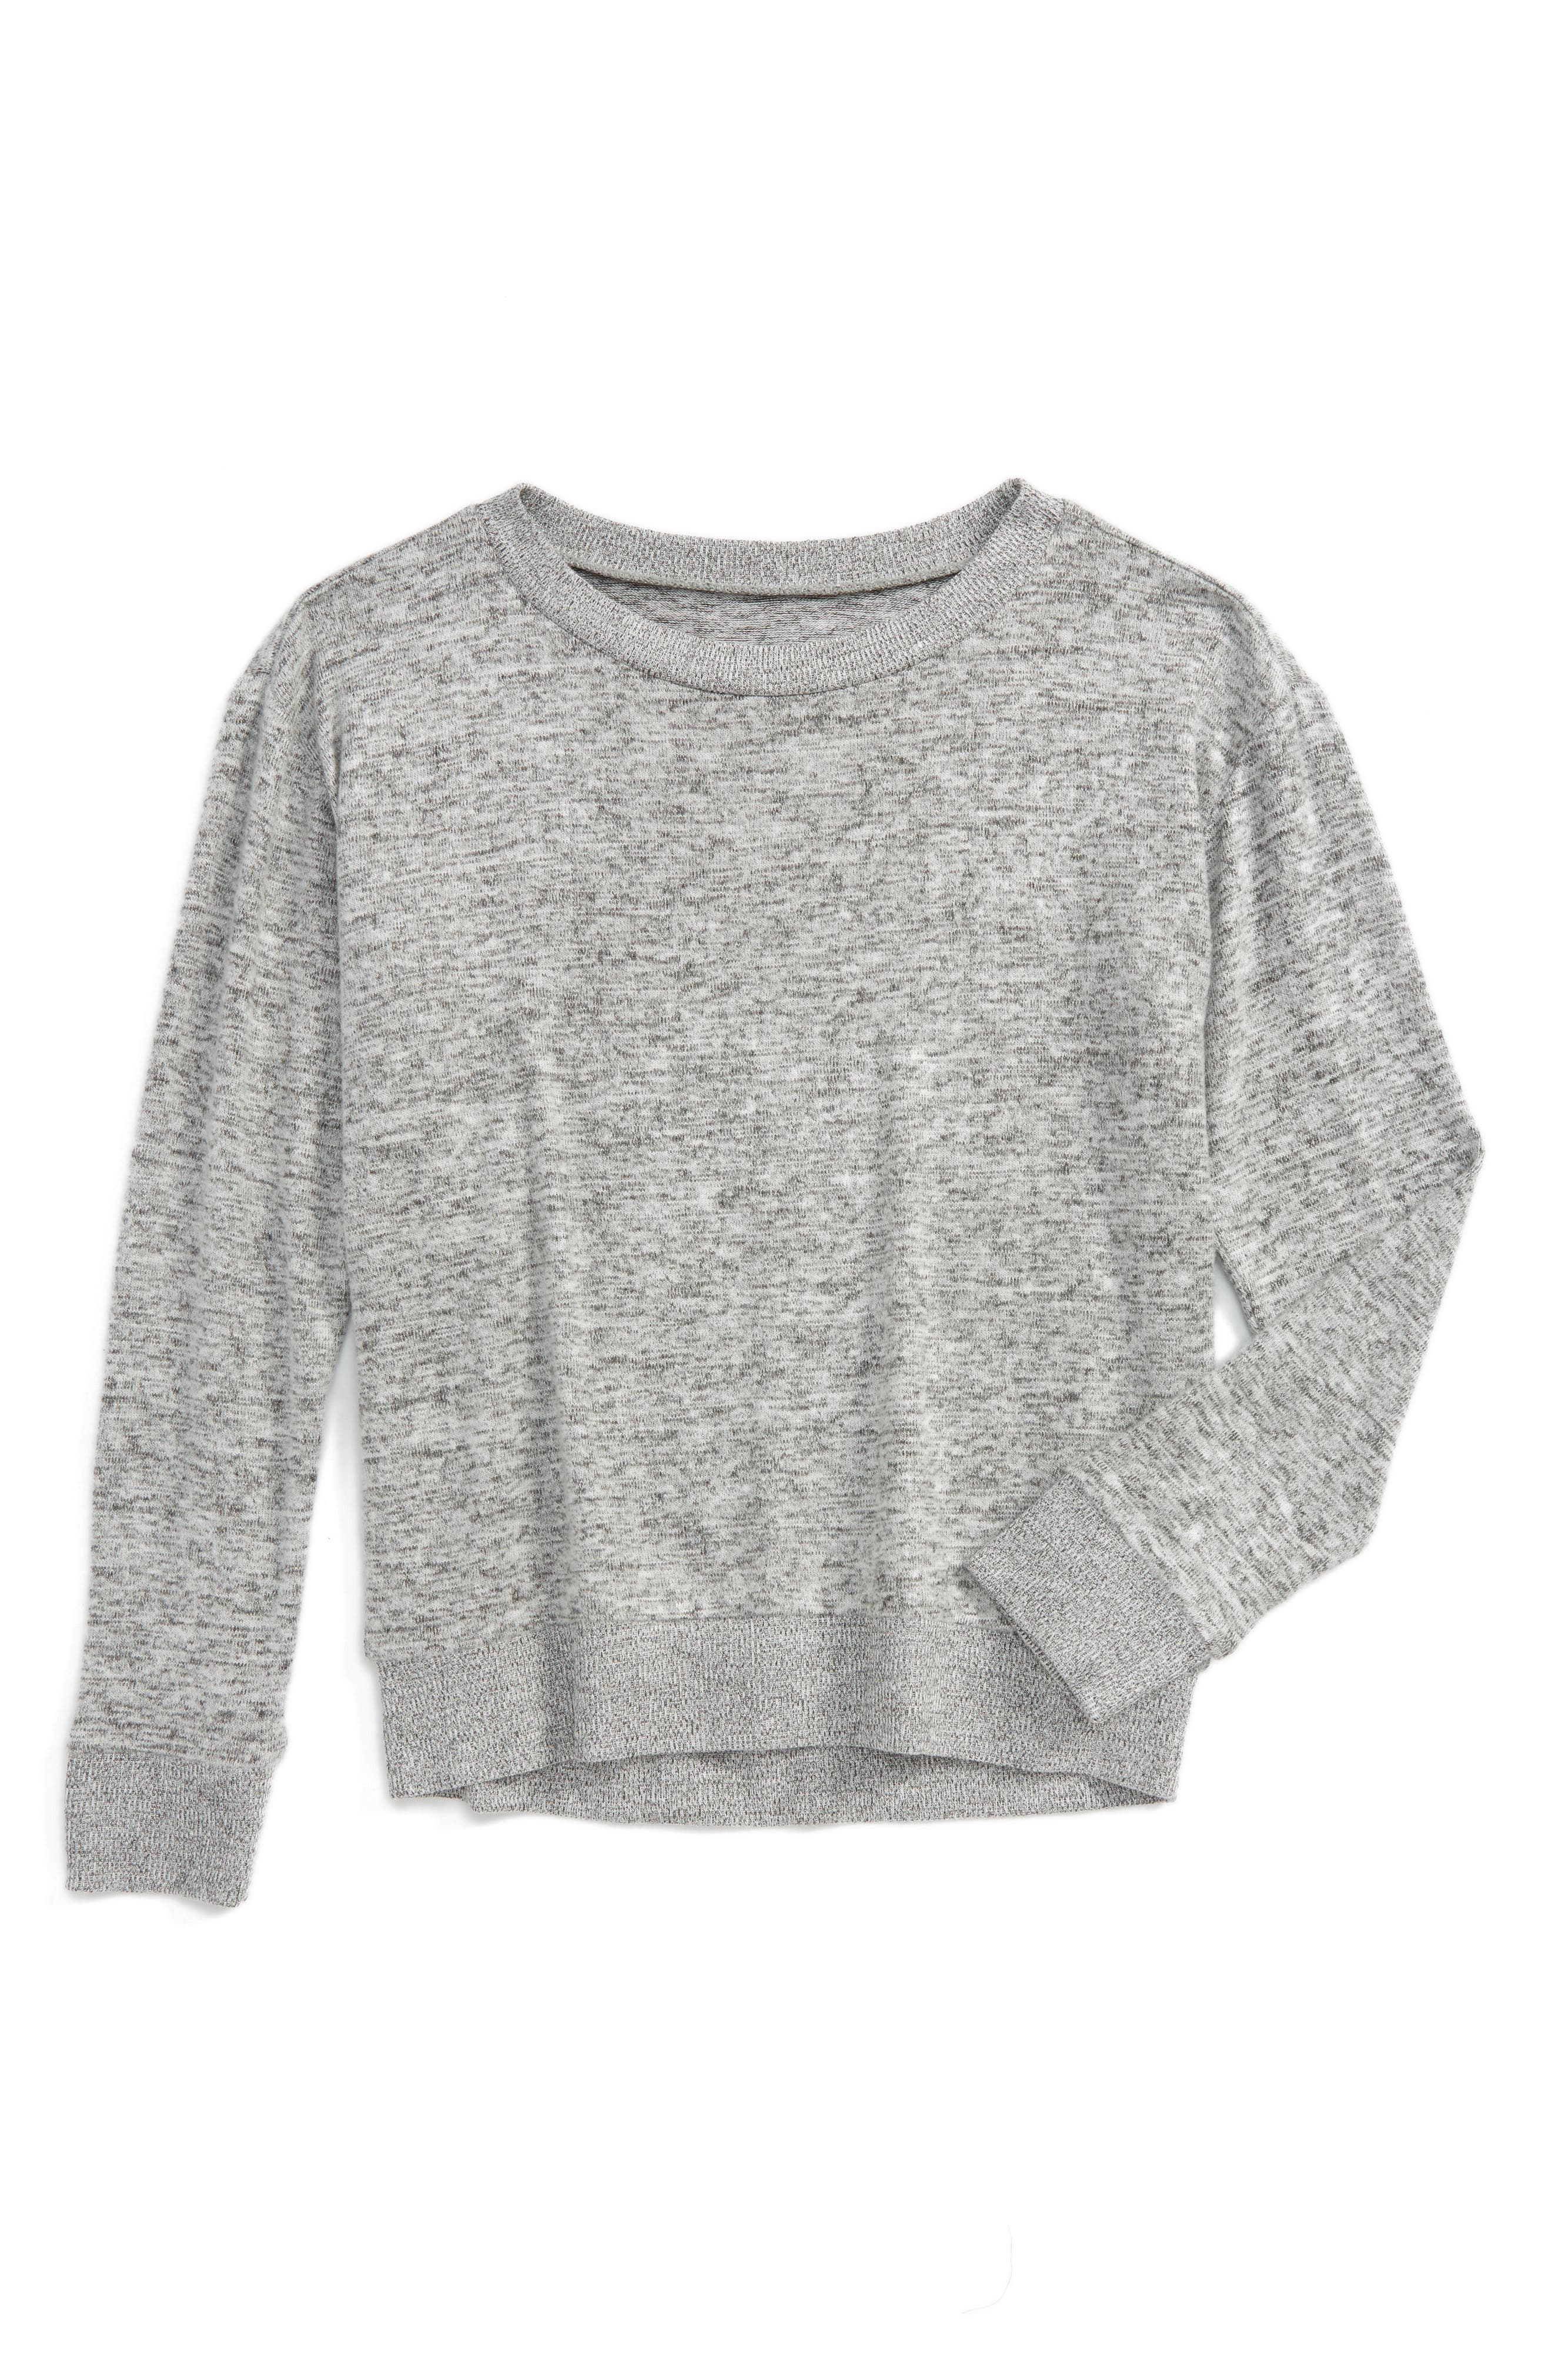 Supersoft Sweater,                             Main thumbnail 1, color,                             Grey Ash Heather